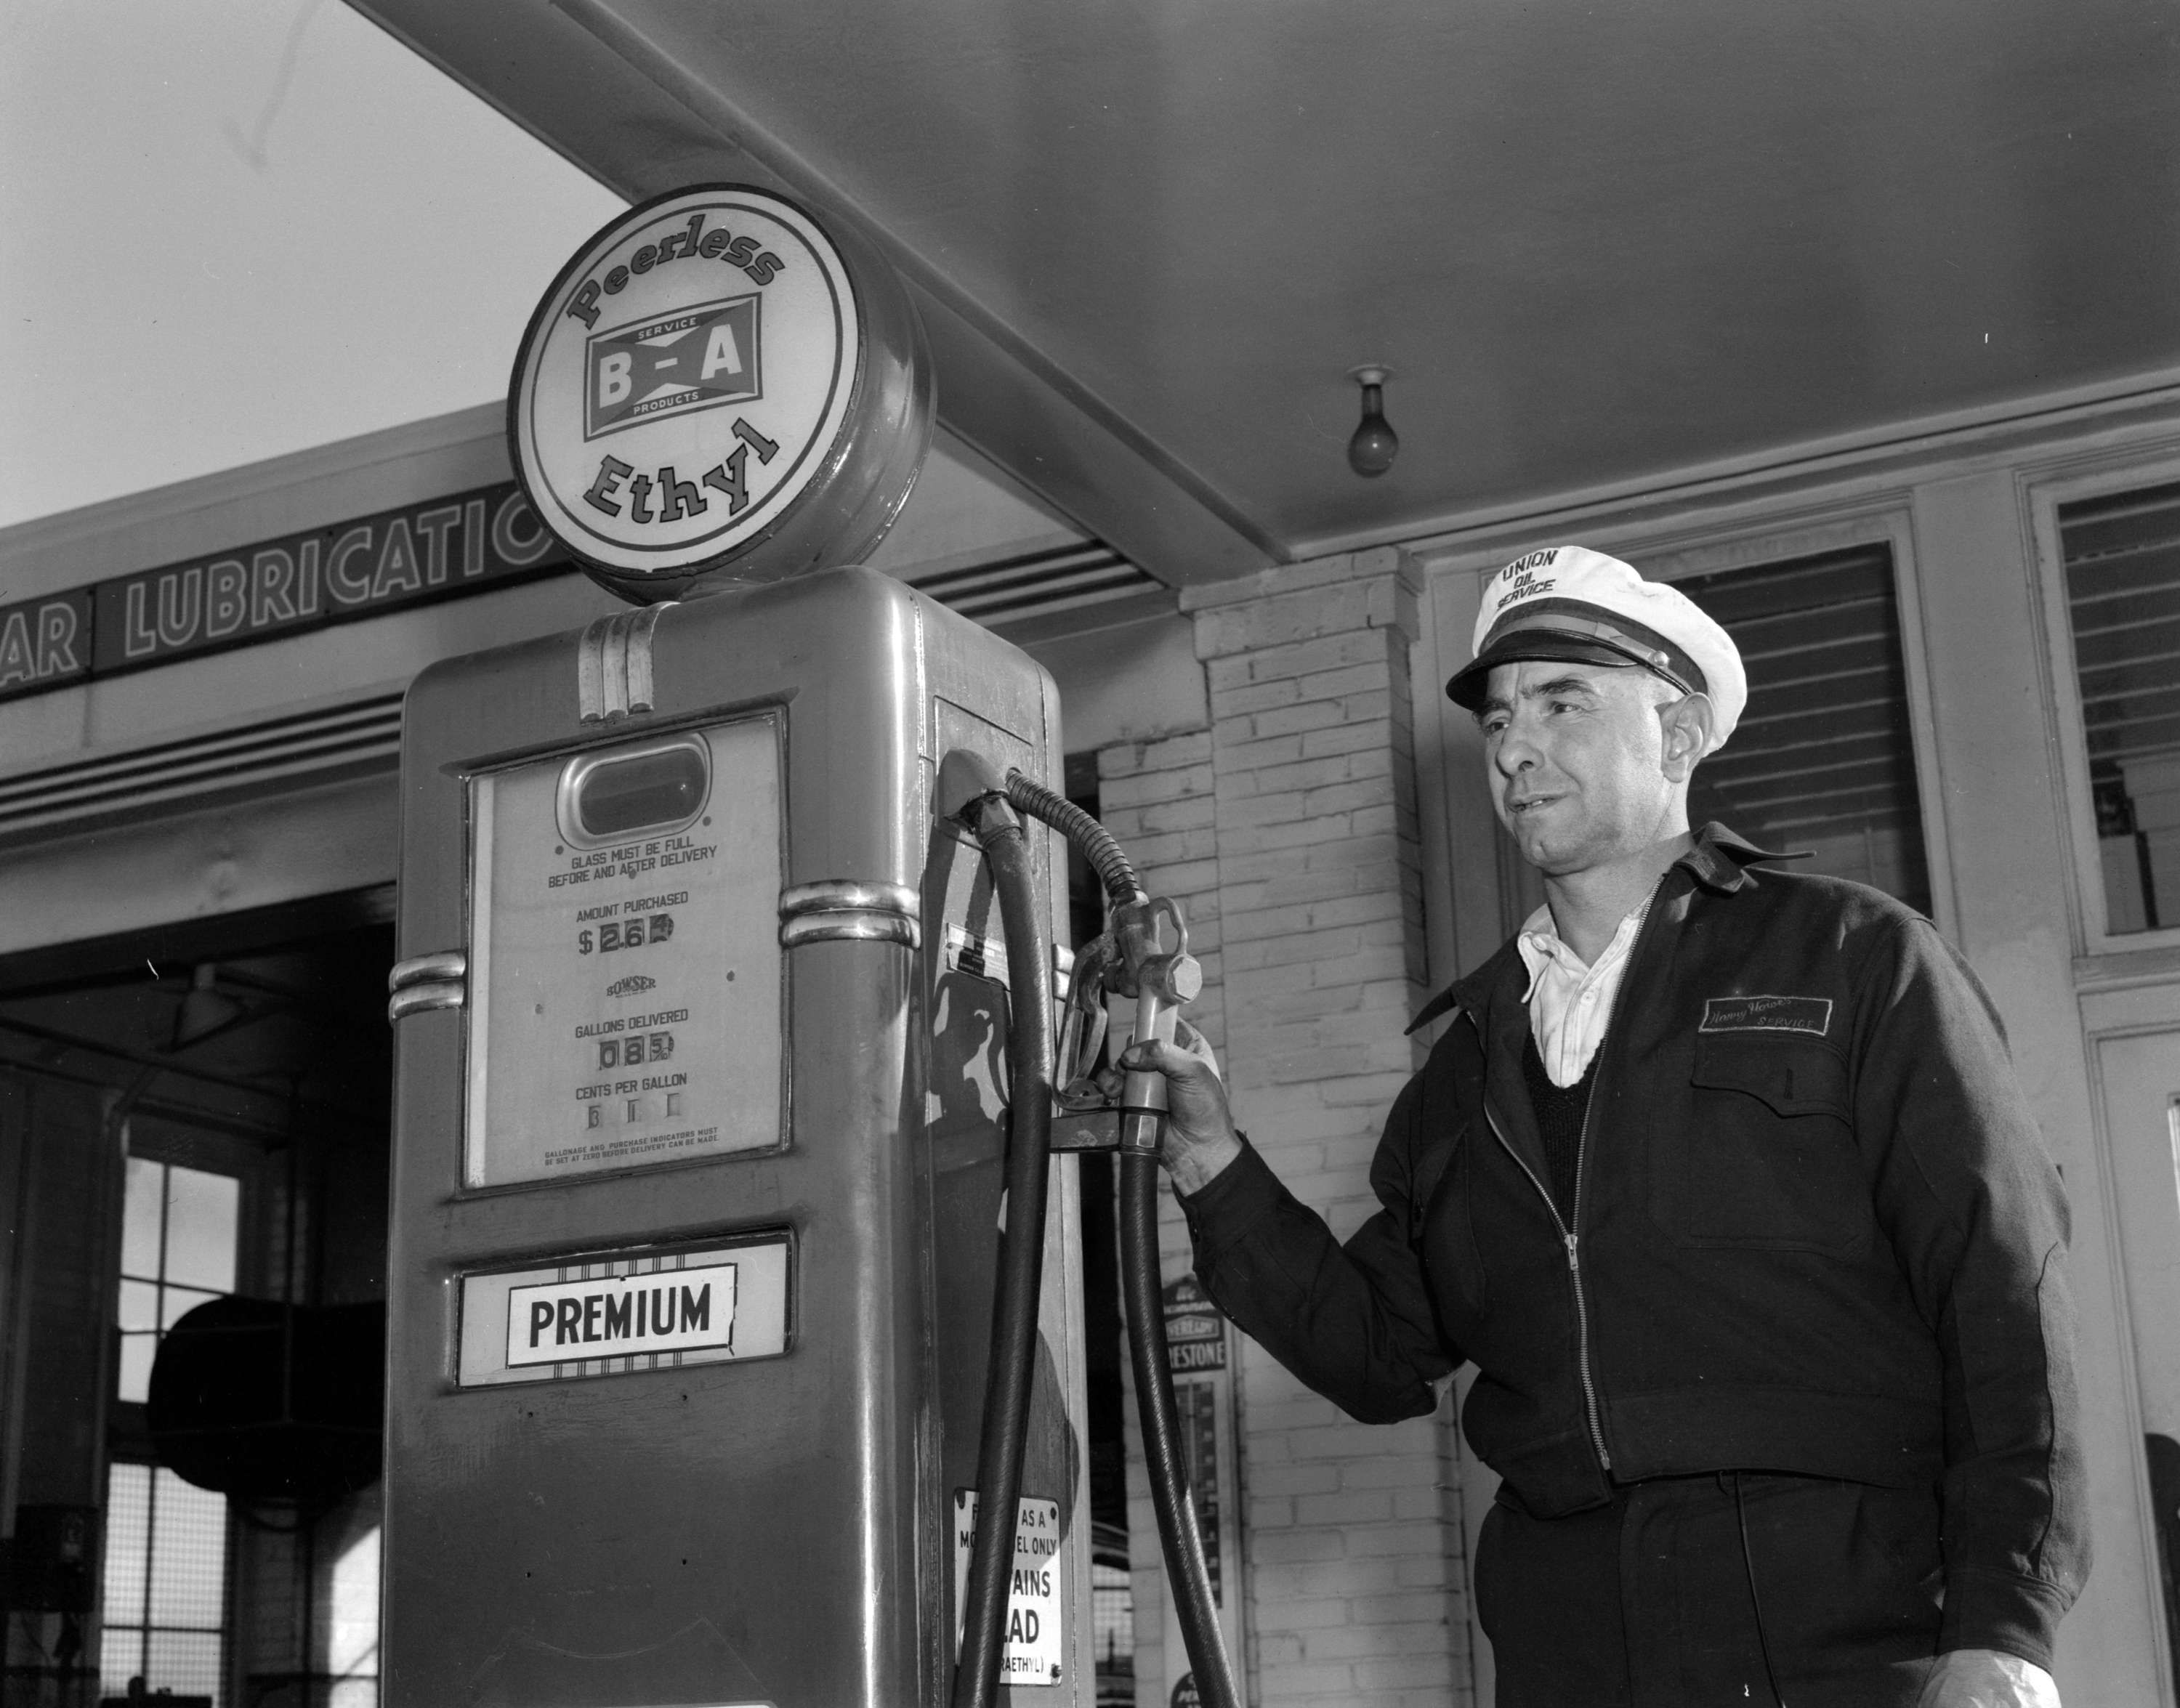 bikini gas station attendants - Google Search | Gas station ...